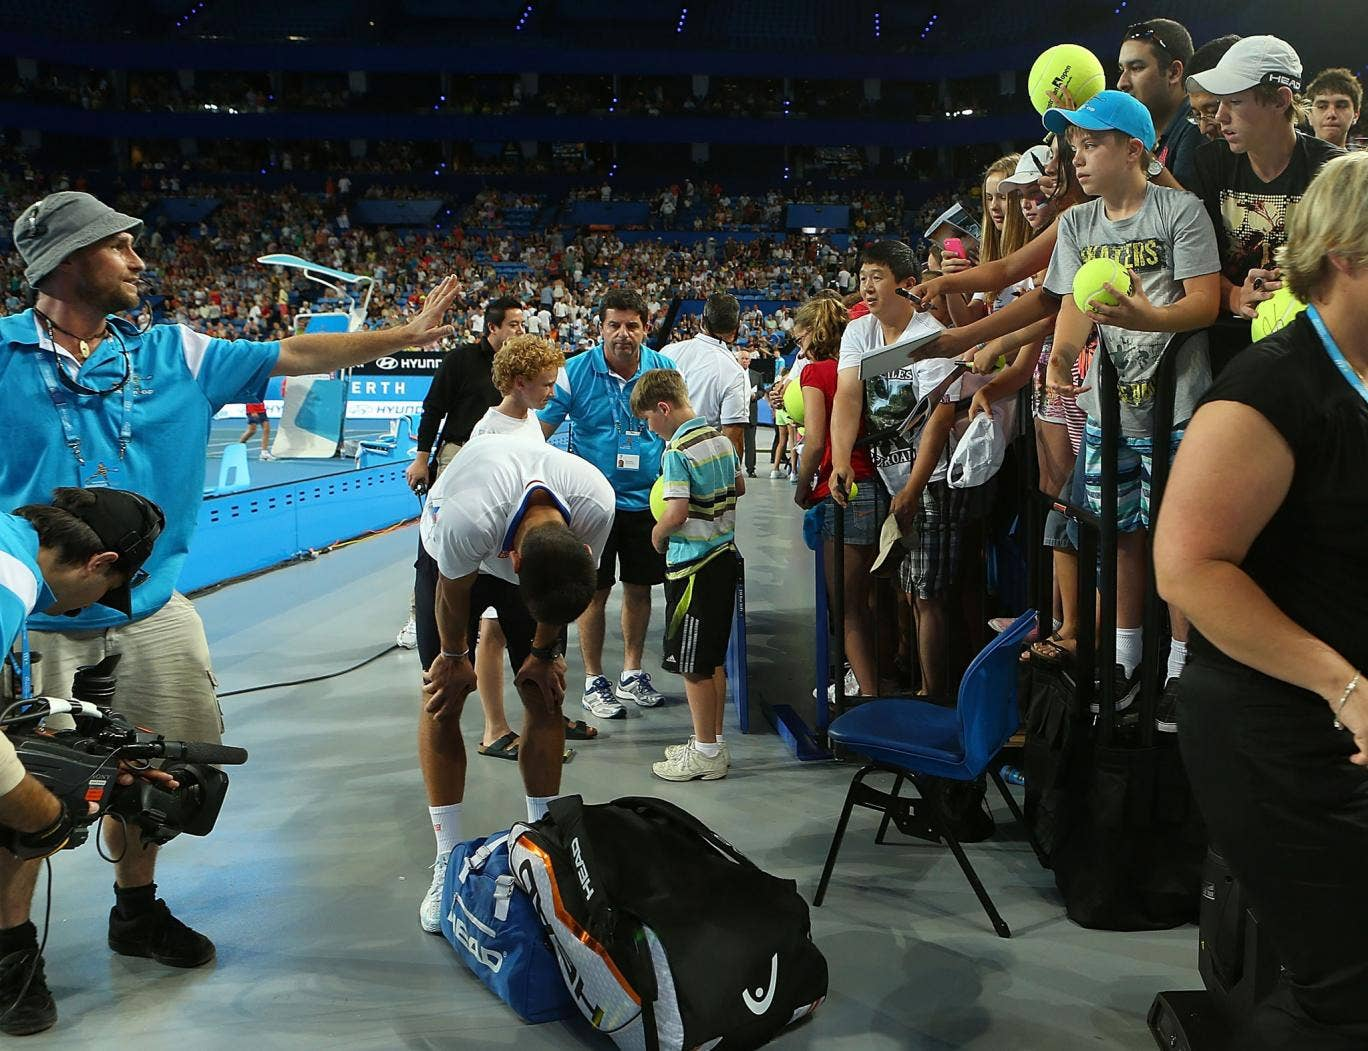 A group of young tennis enthusiasts injured Novak Djokovic as he was signing autographs at the Hopman Cup in Perth